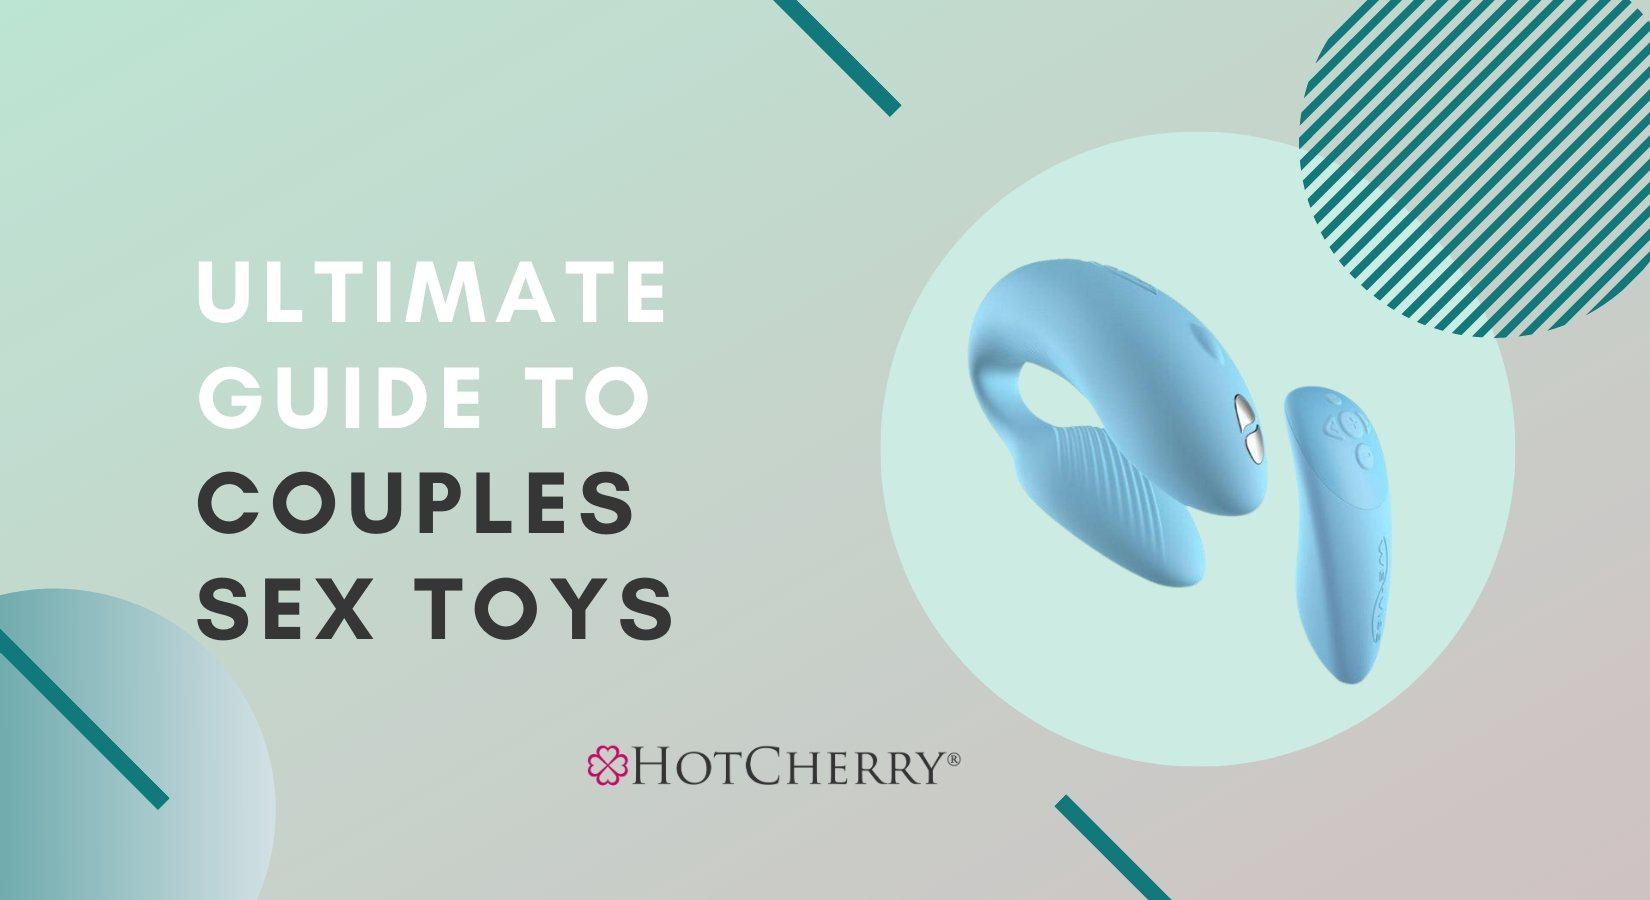 Ultimate Guide for Couples Sex Toys